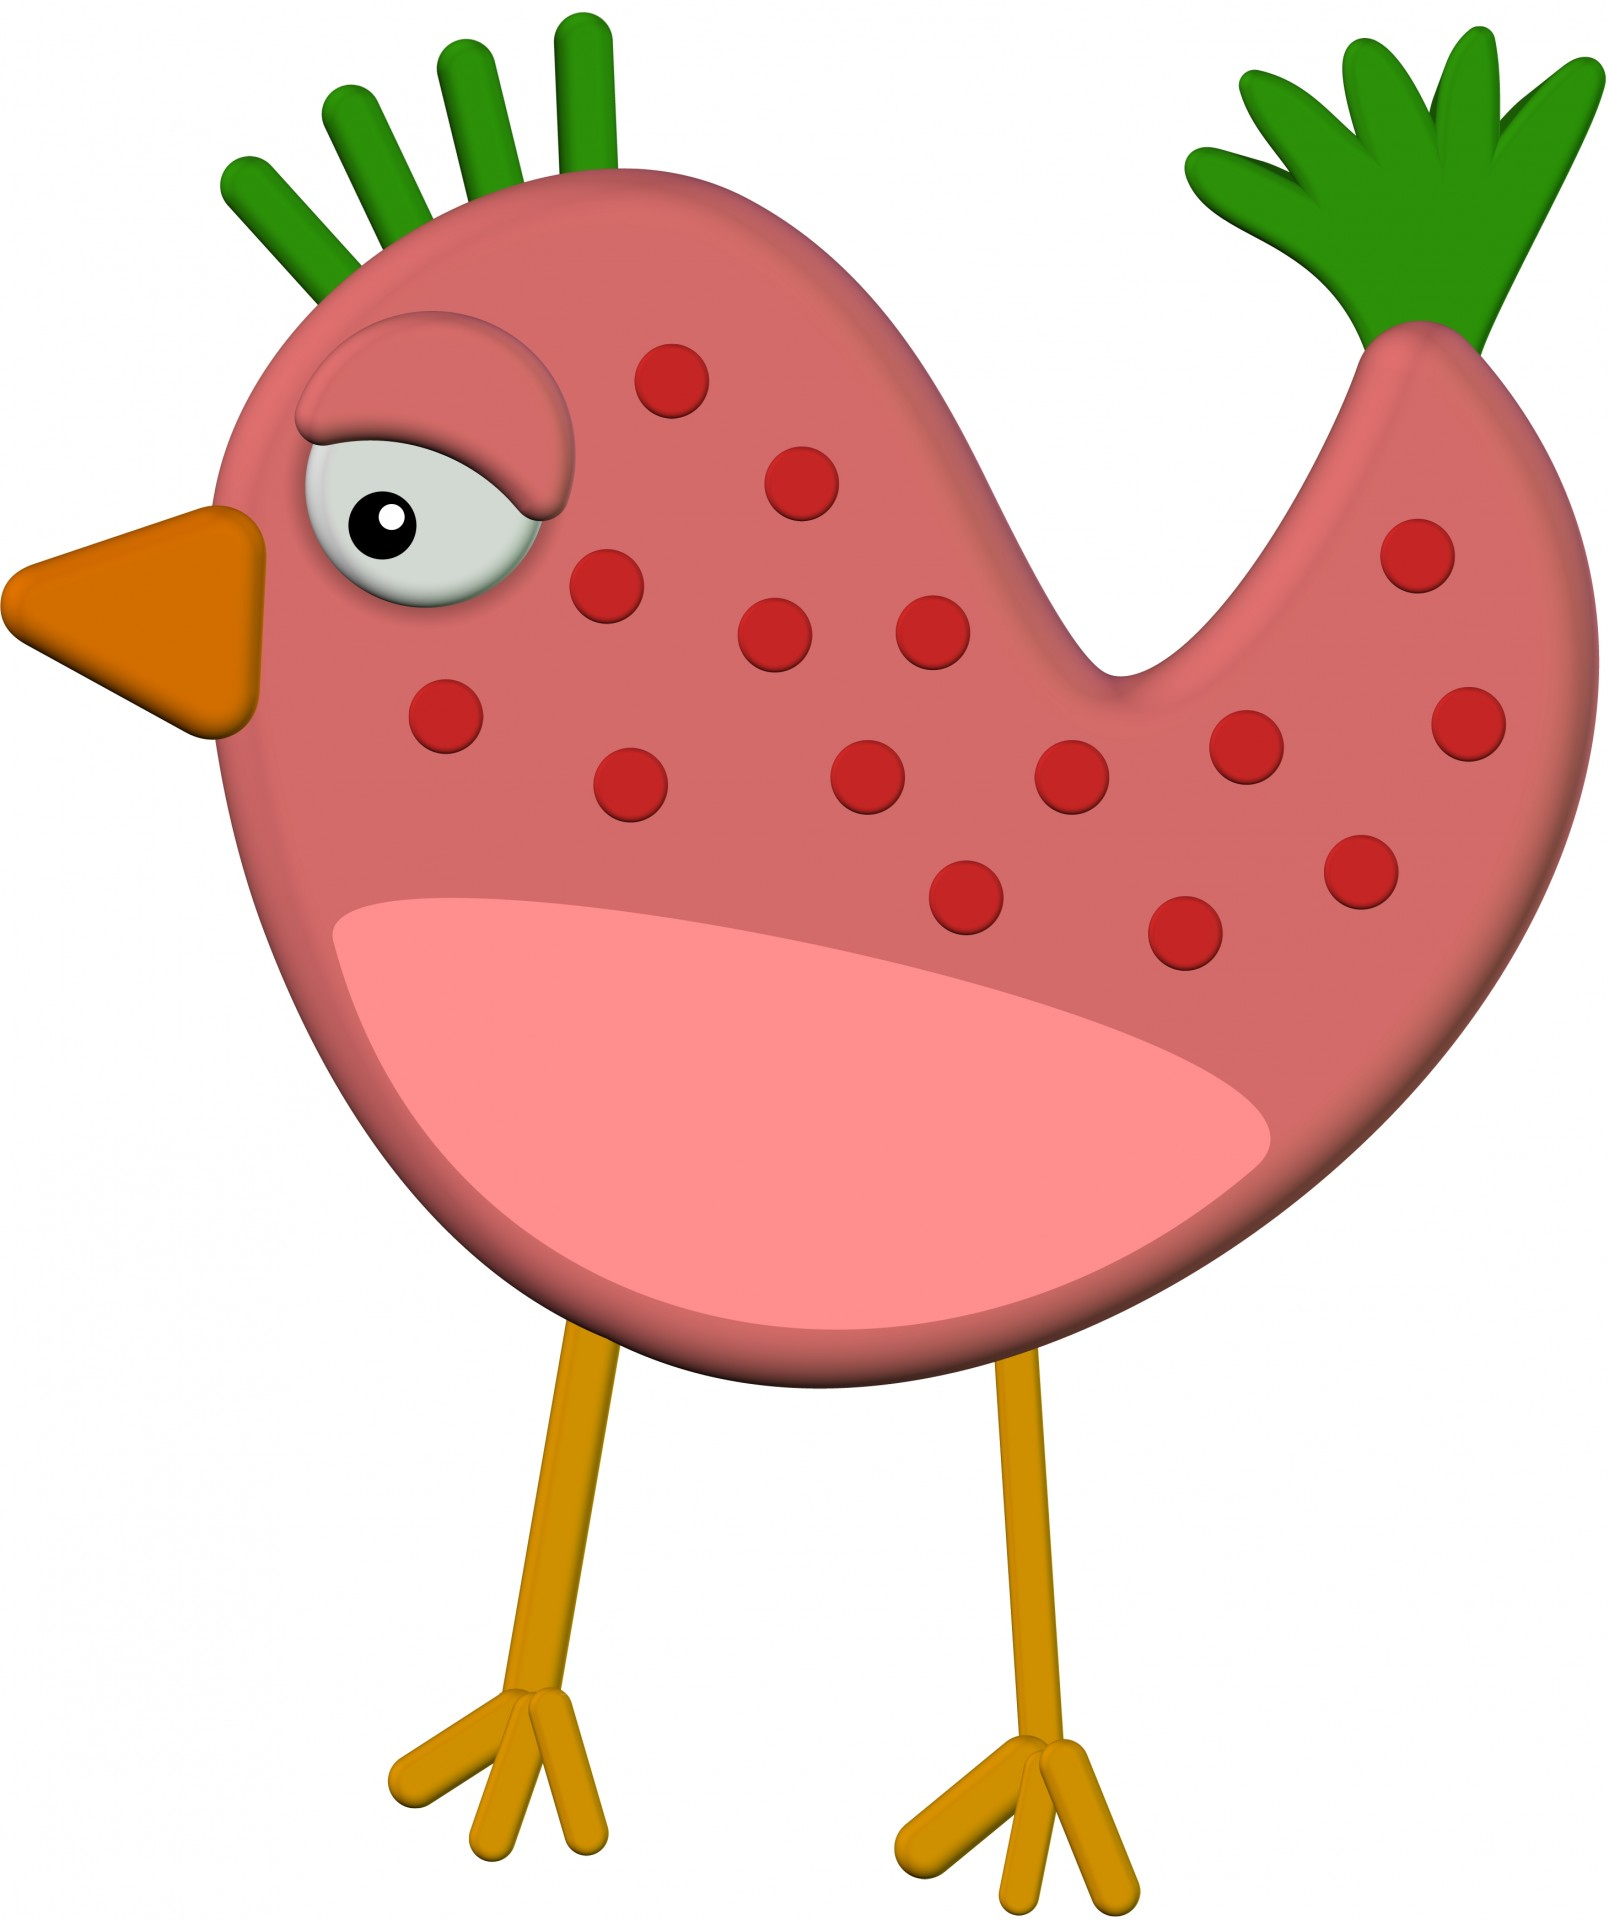 Public domain clipart bird. D chicken free